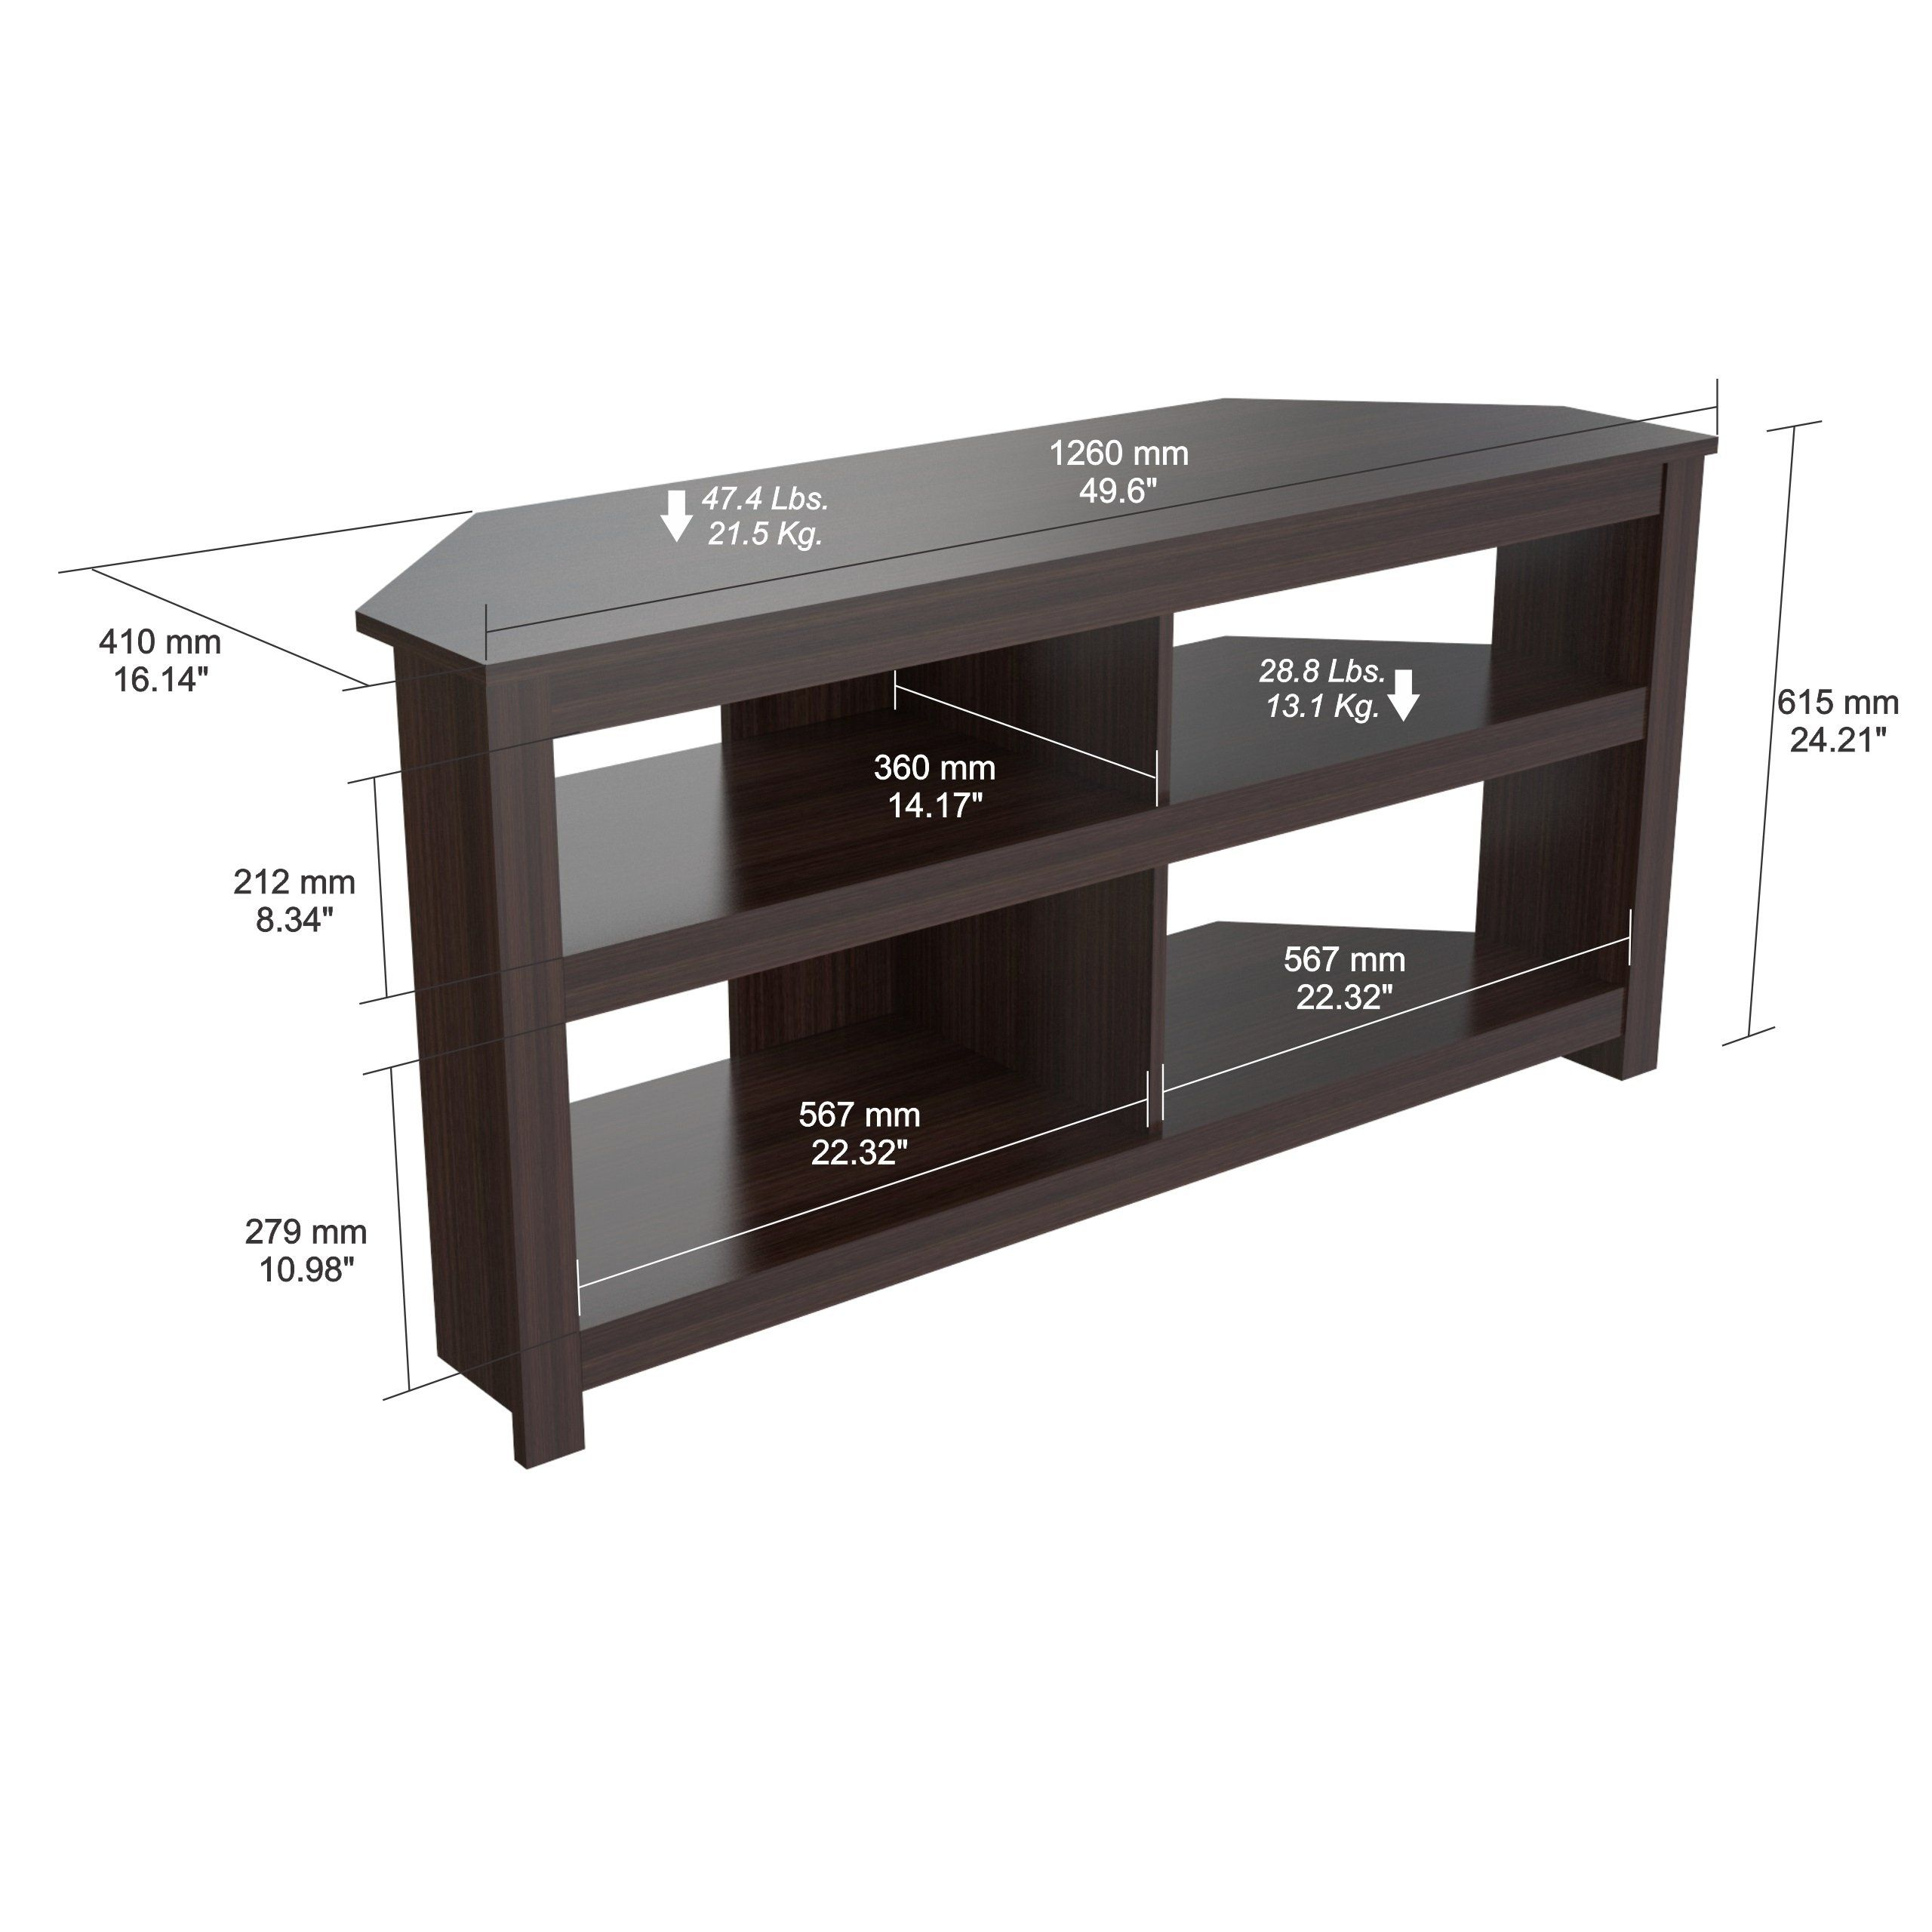 Inval Mtv13519 Espresso Wengue Wood 50 Corner Tv Stand To View Further For This Item Visit The Image Link This Is An Af Corner Tv Stand Corner Tv Tv Stand